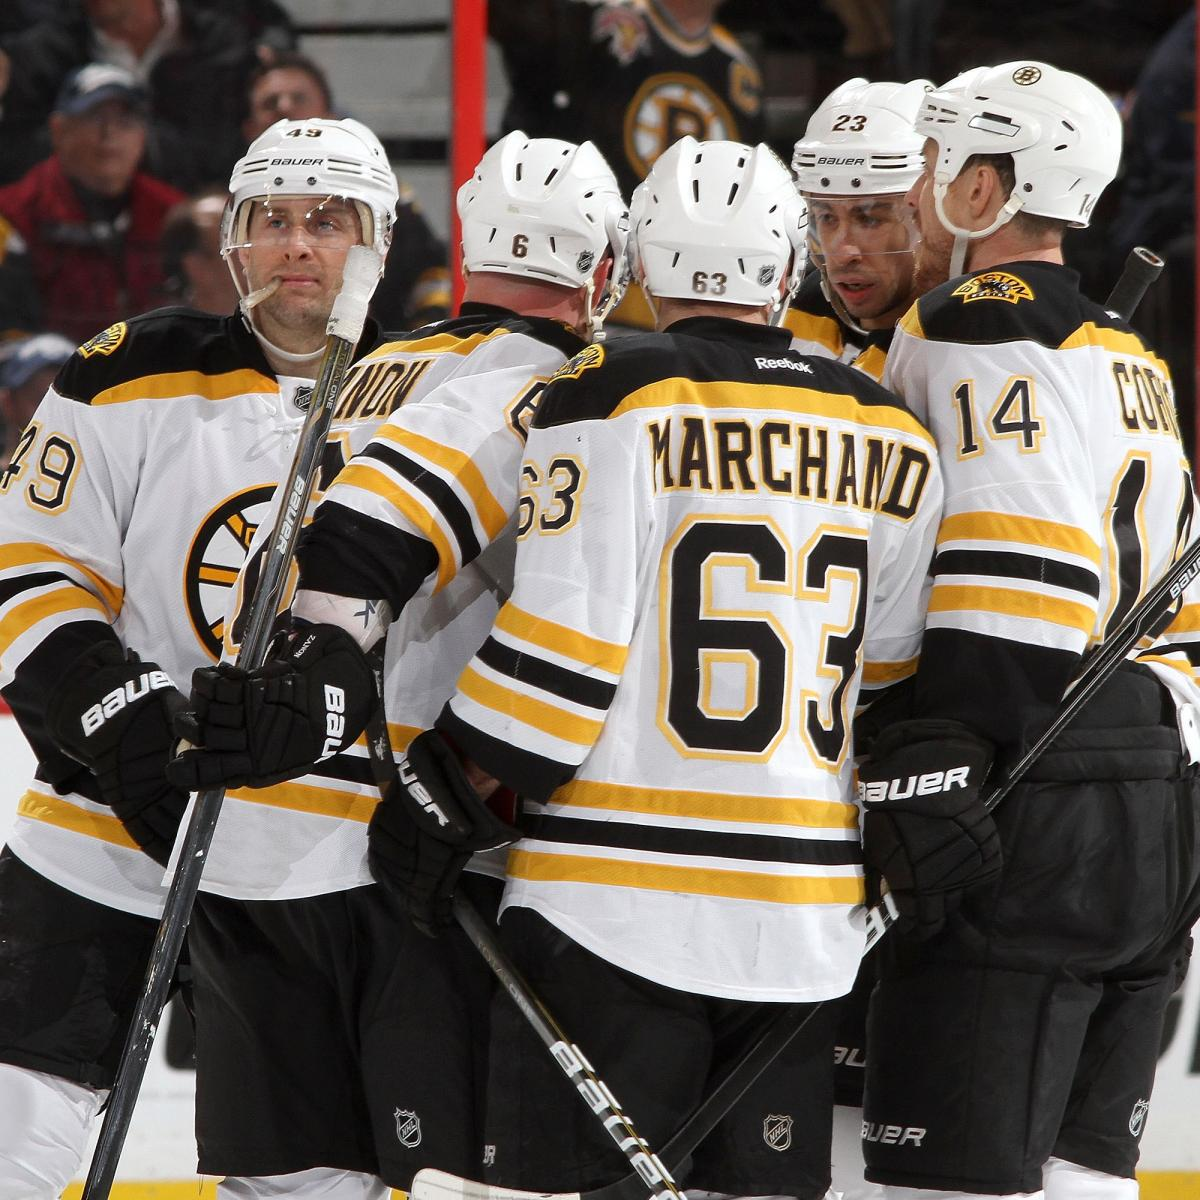 Bruins Playoff Schedule 2012: Odds & Predictions For